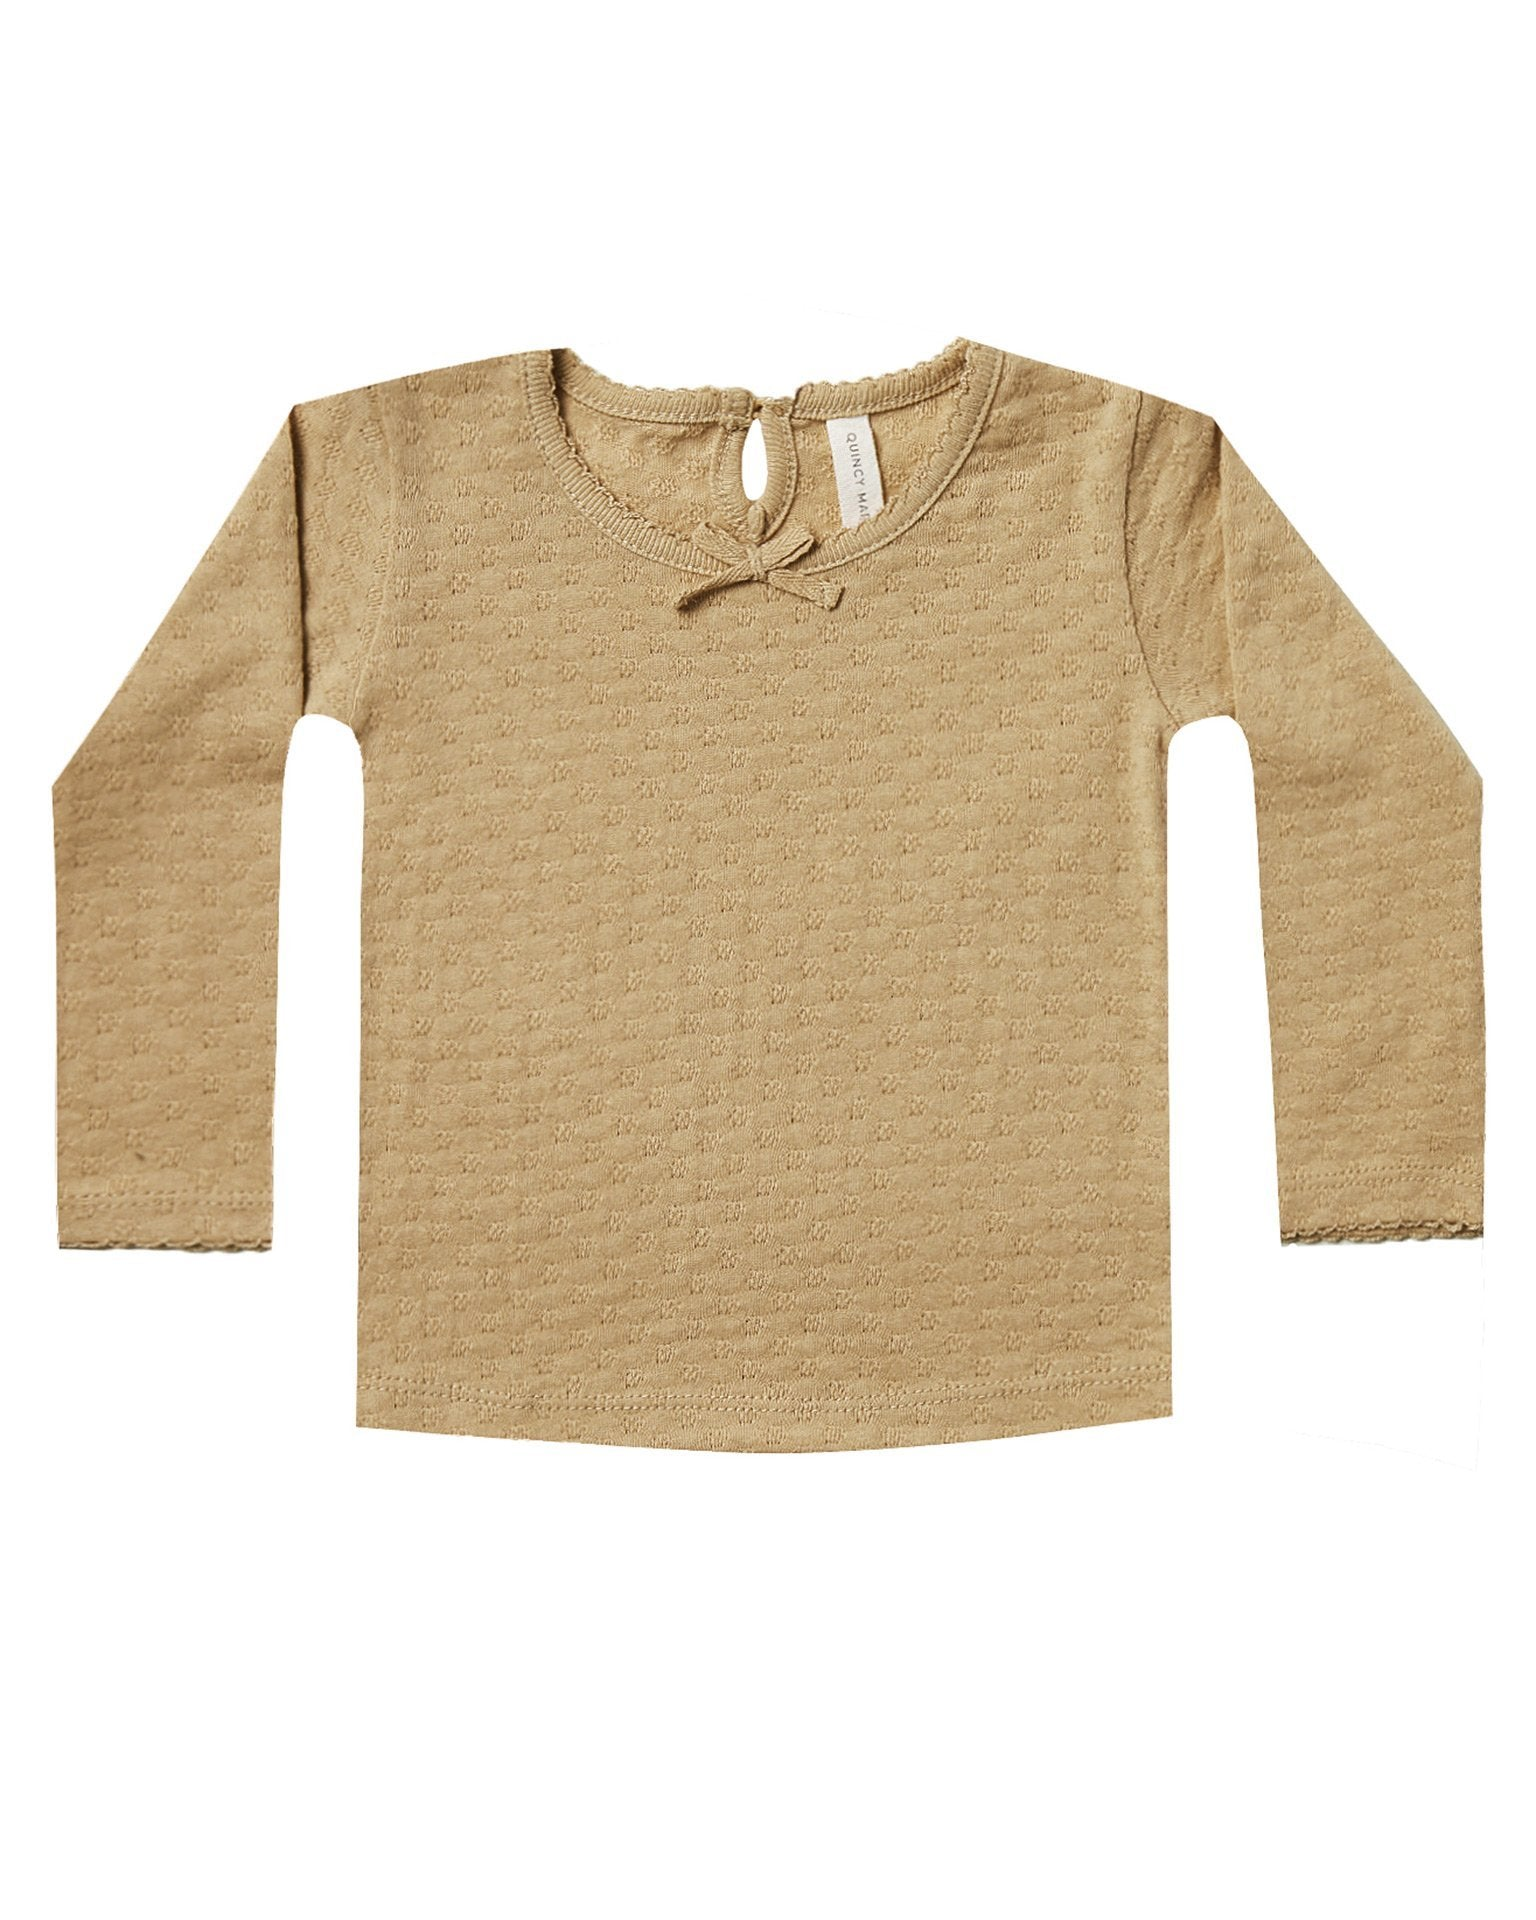 Little quincy mae baby girl longsleeve pointelle tee in honey